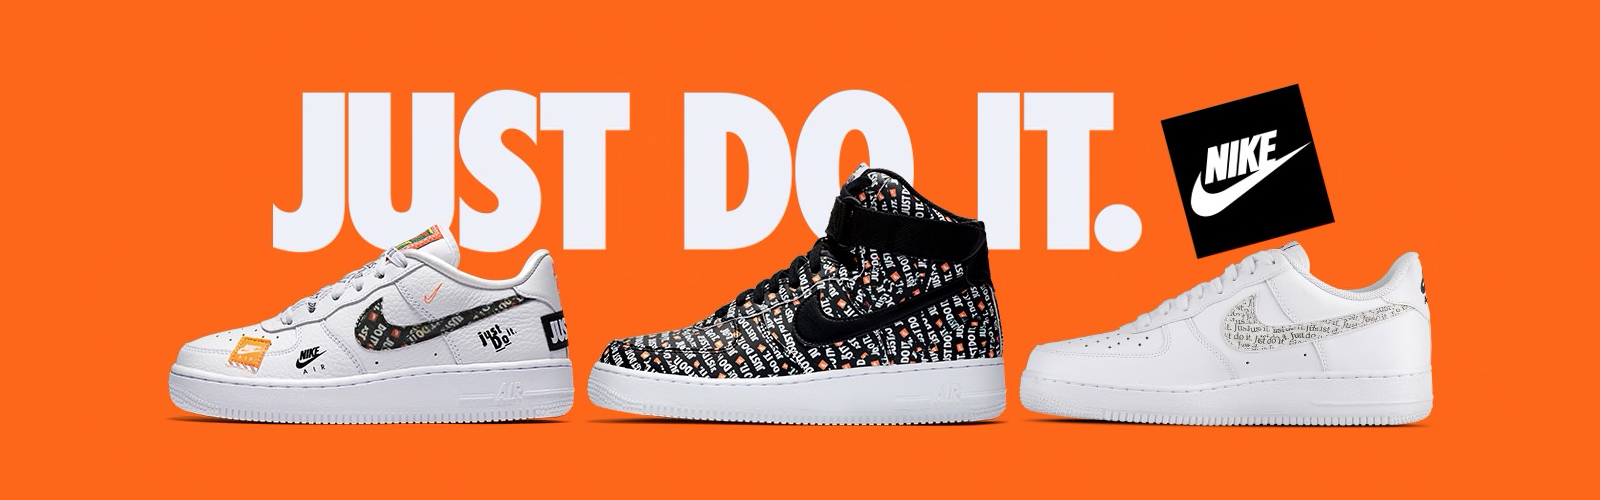 nike-air-force-1-jdi-just-do-it